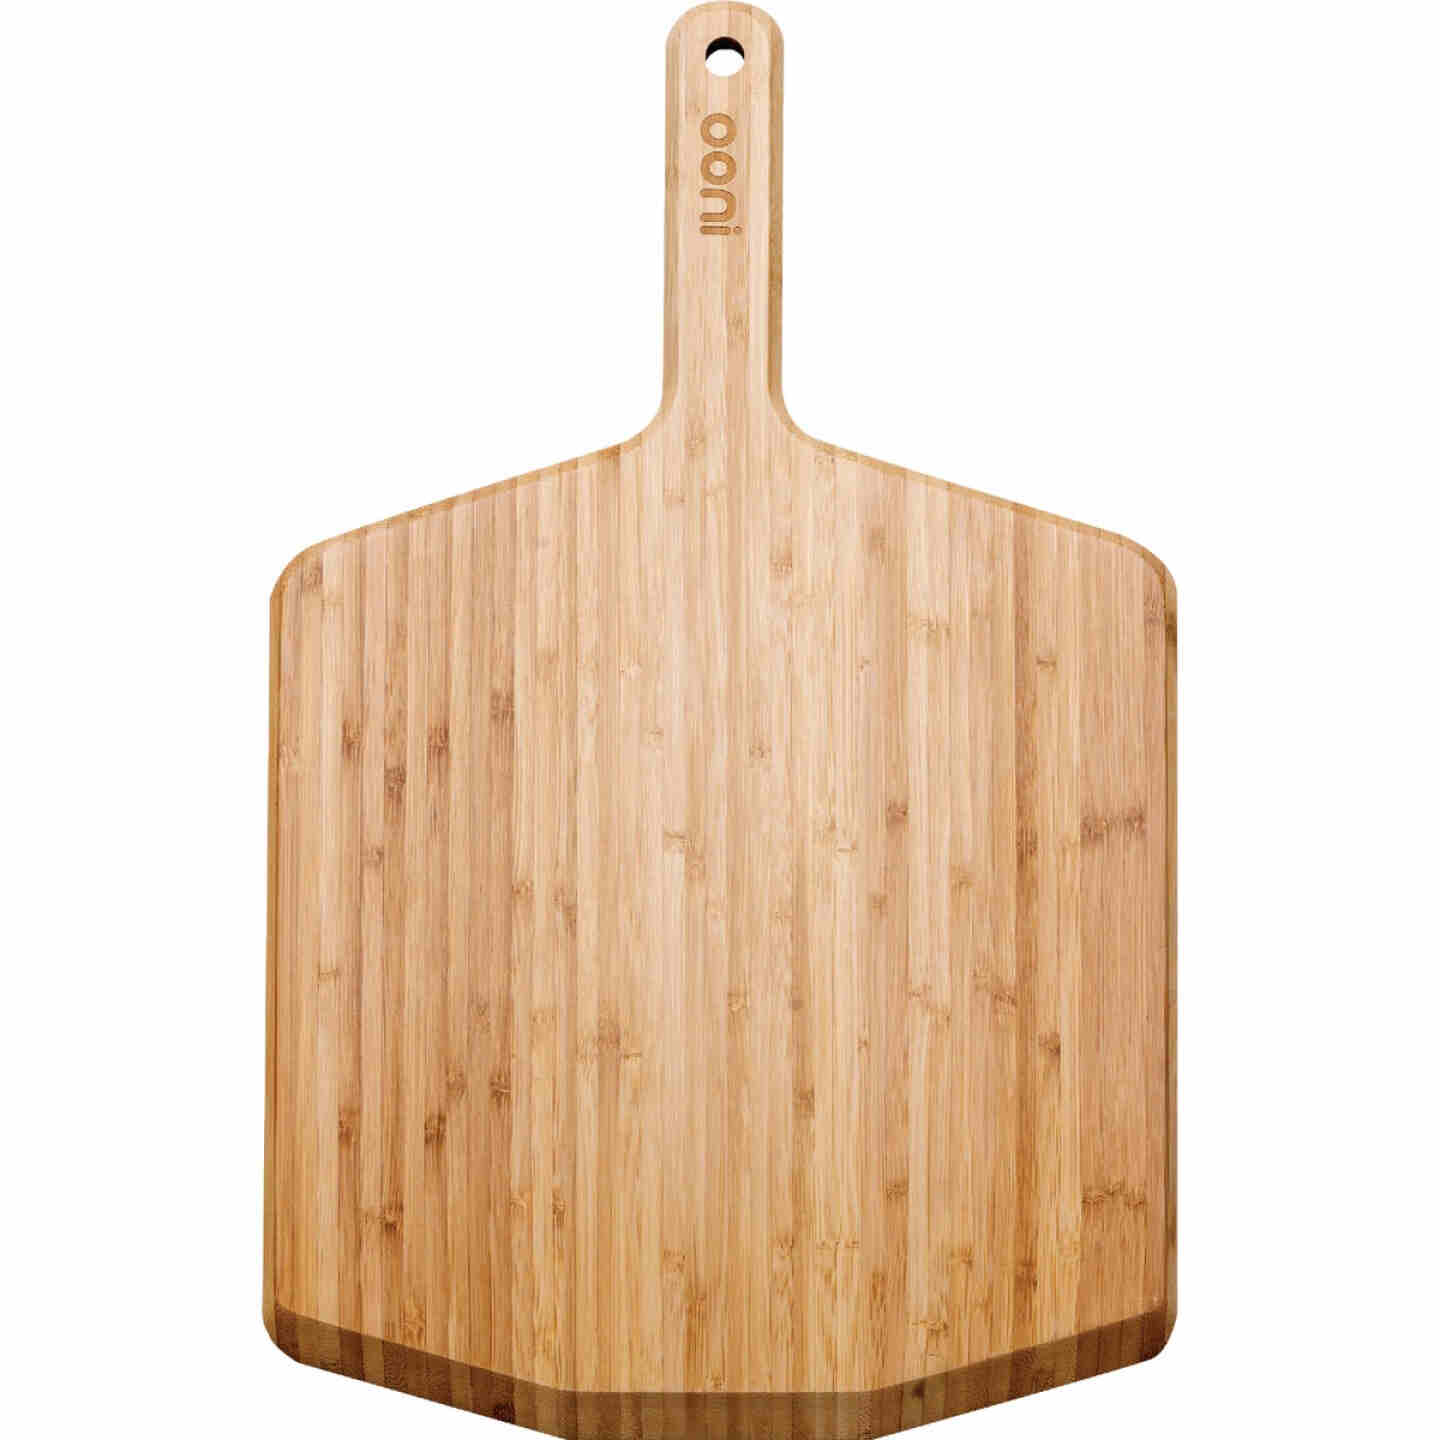 Ooni 12 Bamboo Pizza Peel & Serving Board Image 1